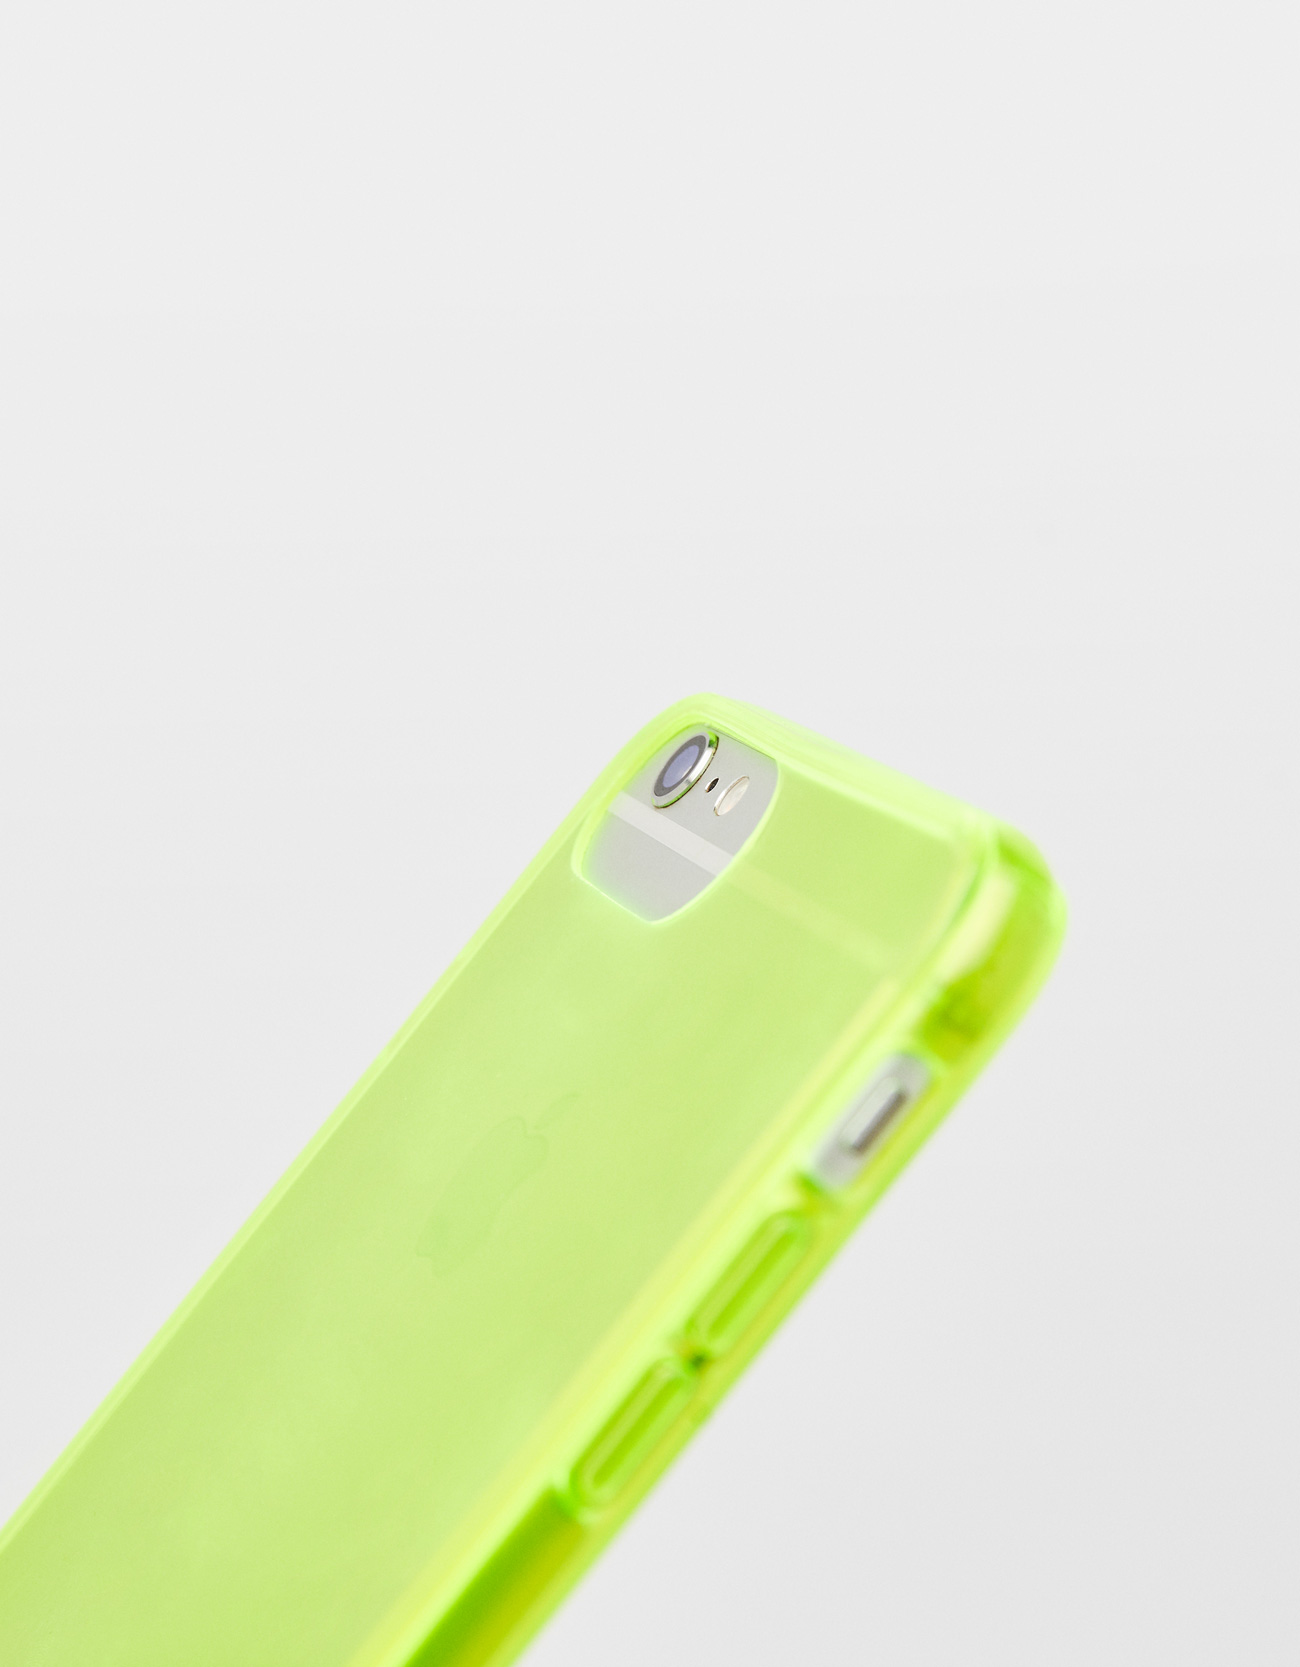 innovative design 7e41c 07f15 Transparent neon iPhone 6 Plus / 7 Plus / 8 Plus case - CLOTHING - Bershka  Indonesia